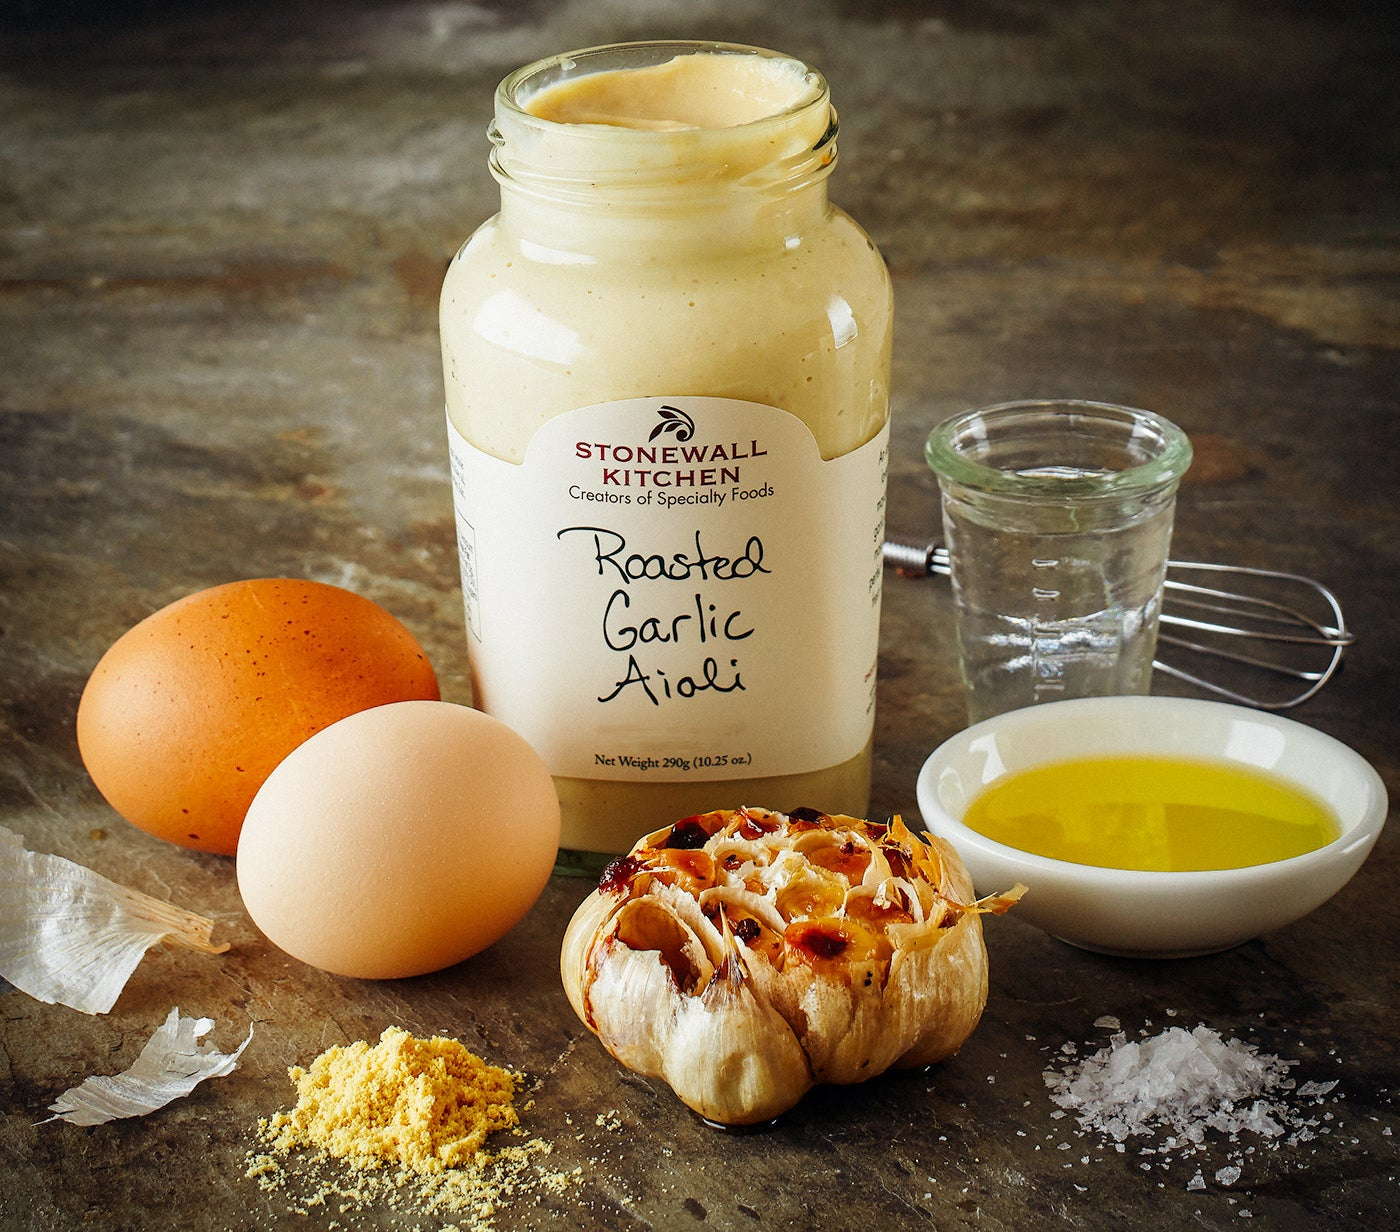 A jar of Stonewall Kitchen roasted garlic aioli surrounded by fresh garlic cloves, eggs, and oil on a countertop